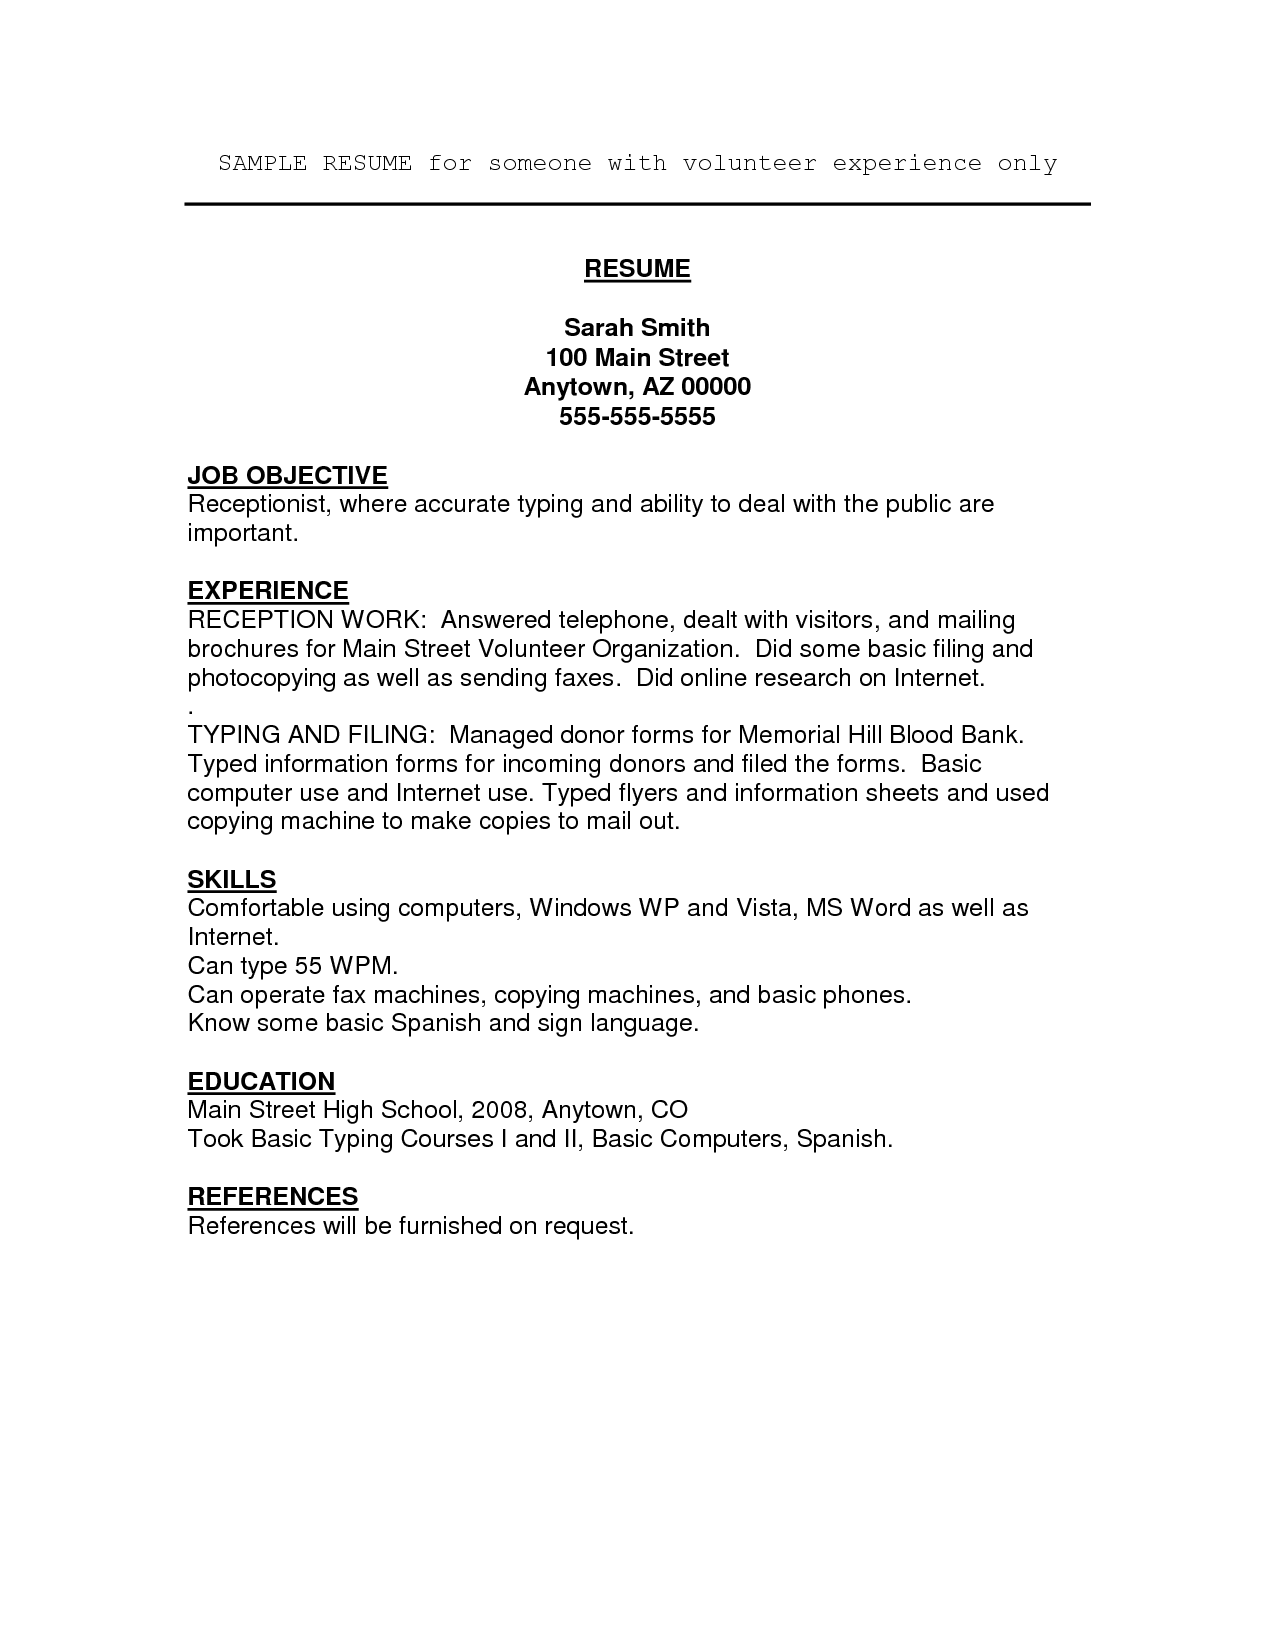 How To Type A Resume Glamorous Resume Examples Volunteer Activities  Pinterest  Resume Format And